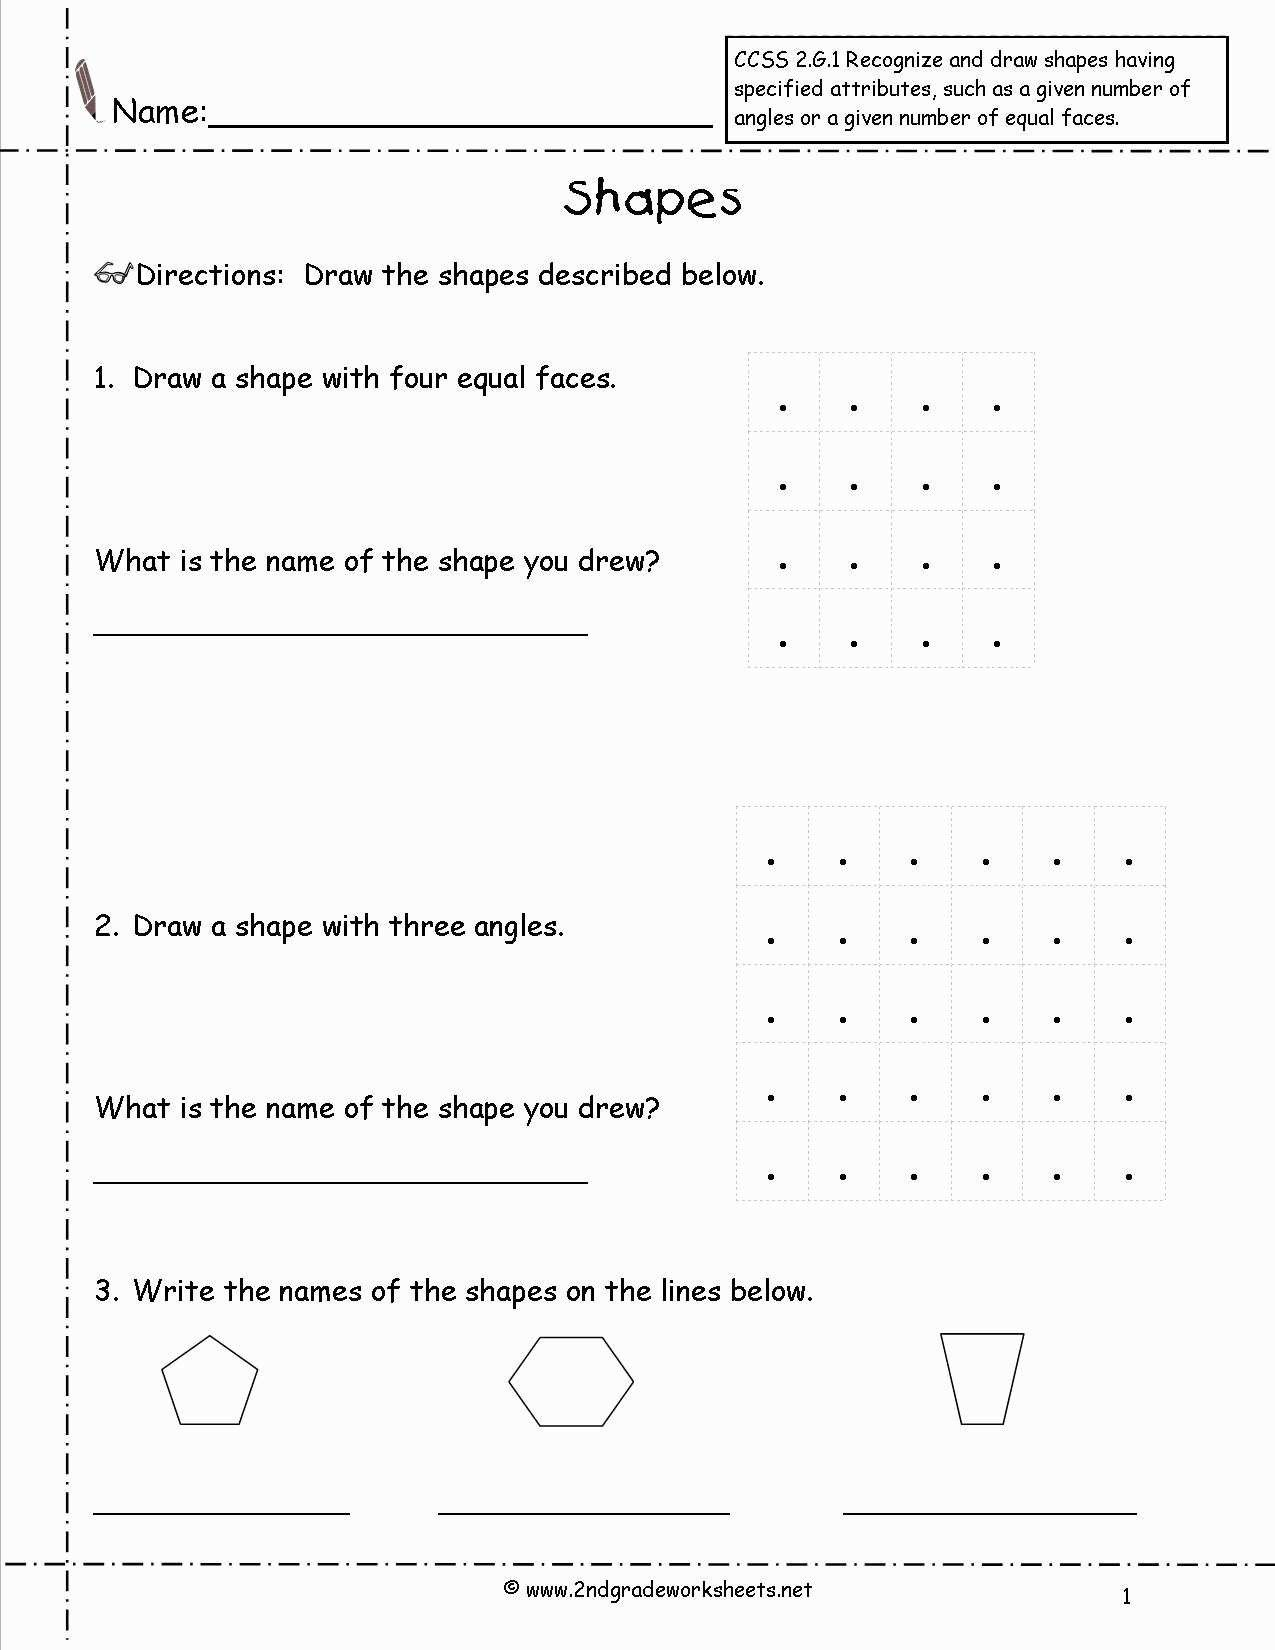 Beginning Algebra Worksheets